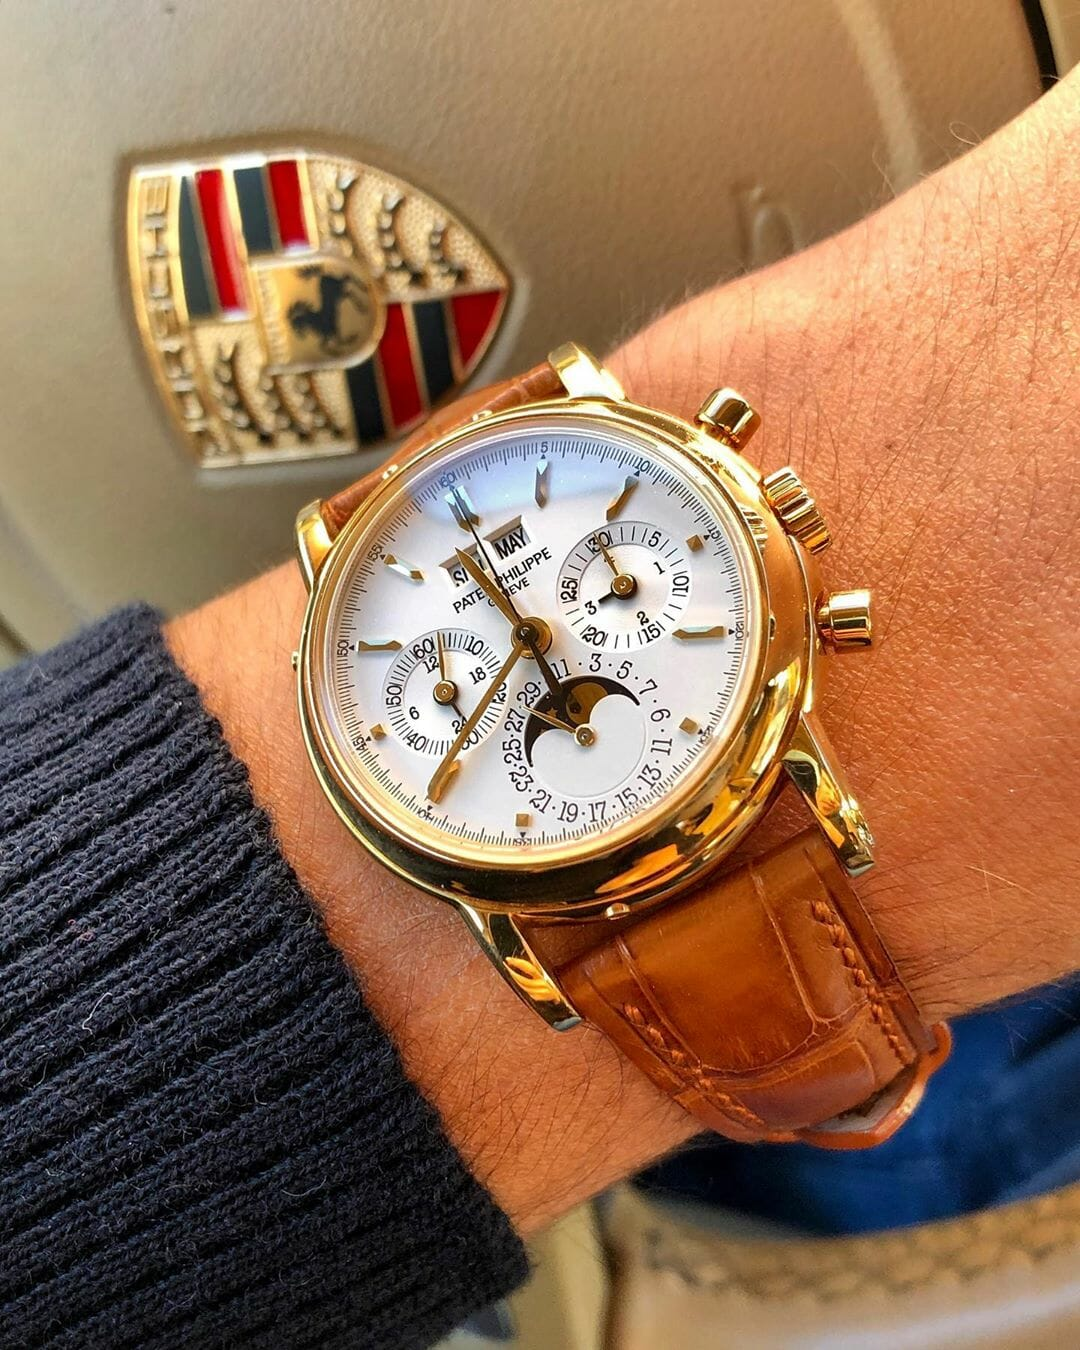 6 Patek Philippe 3970E by IG @watchrookiee